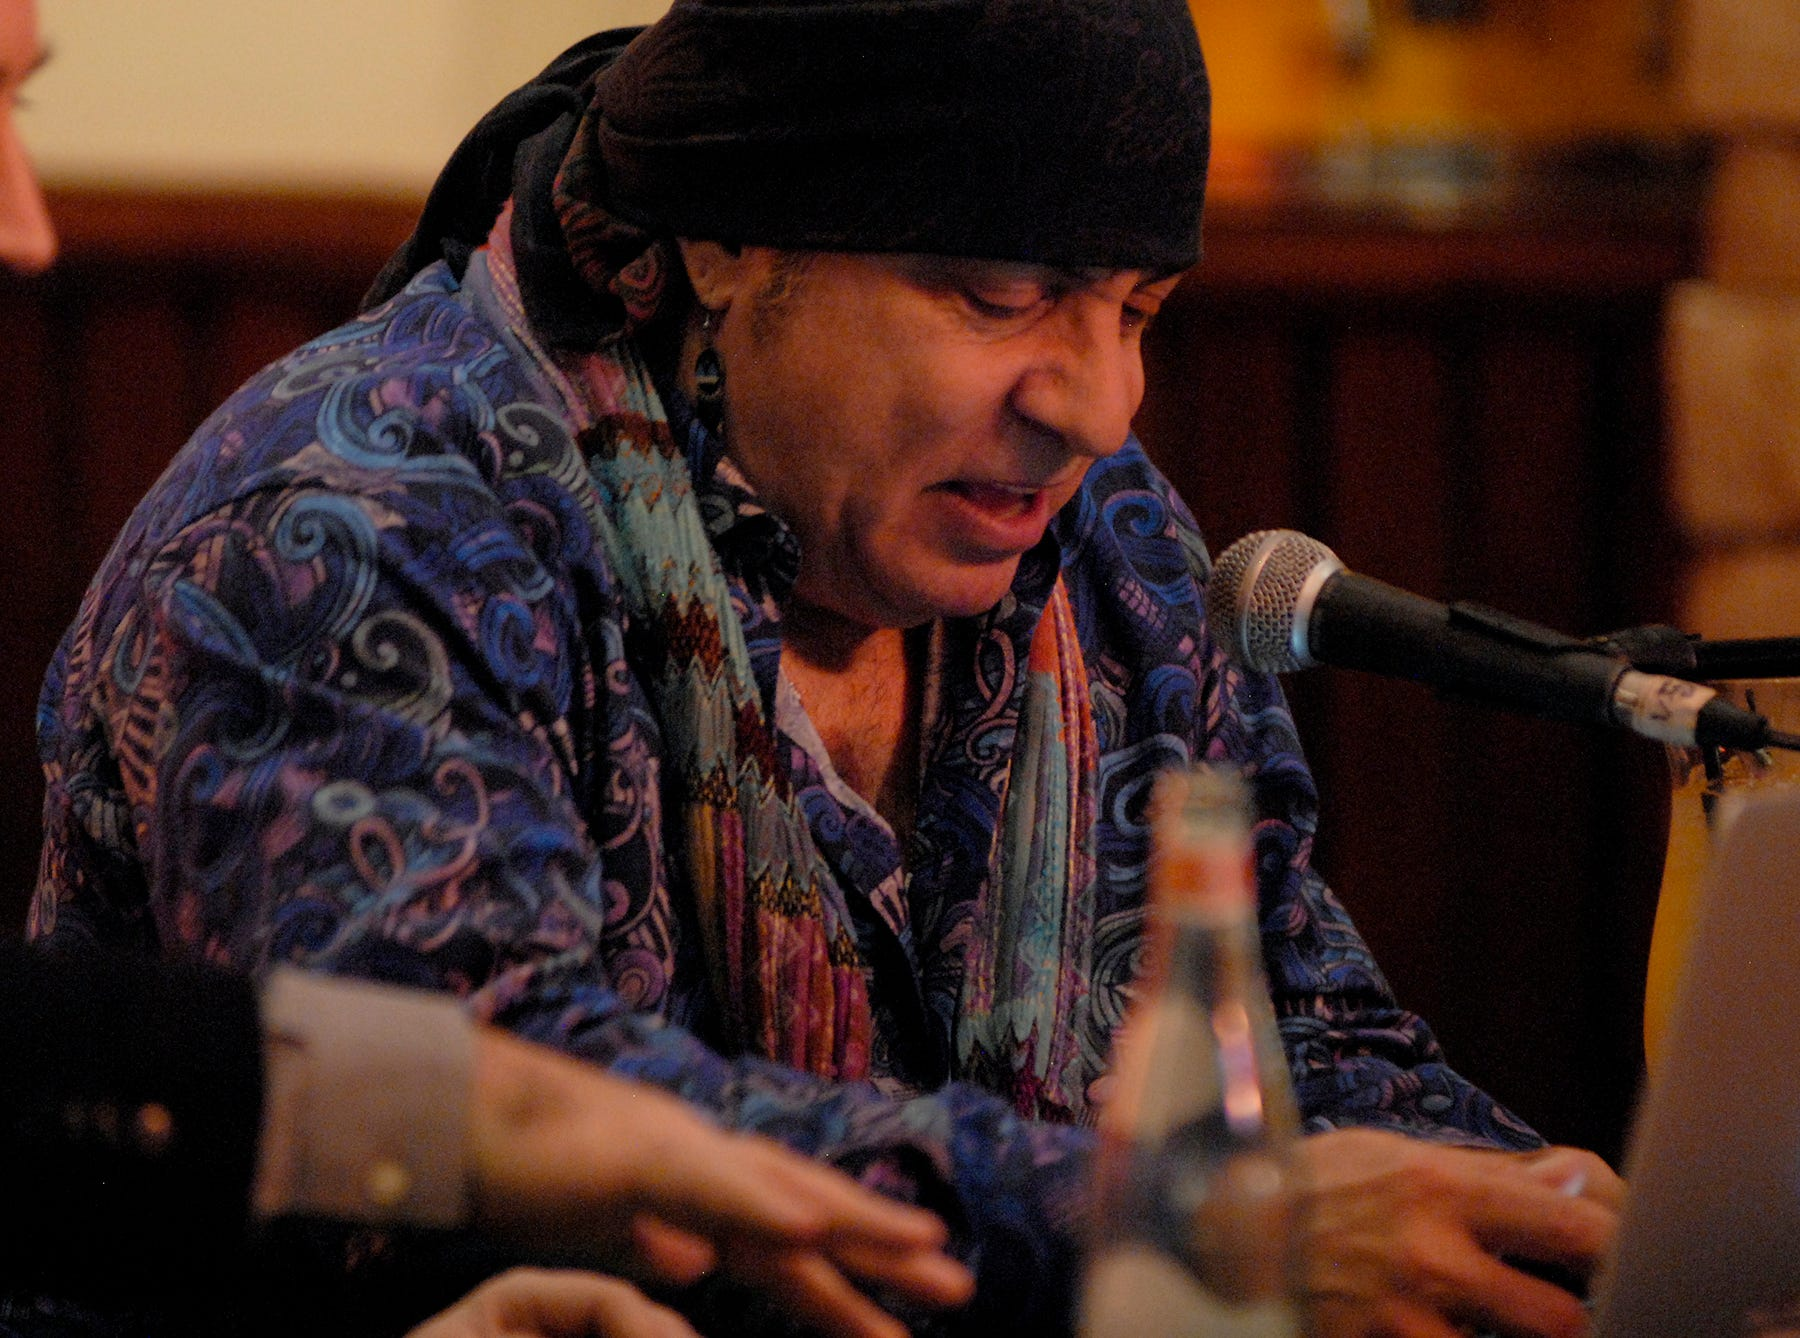 """Steven Van Zandt, of Little Steven and the Disciples and founding member of Bruce Springsteen's E Street Band, hosted his radio show """"Little Steven's Underground Garage"""" for Sirius XM Radio at The Hard Rock Cafe on Fourth Street Live!.  July 30, 2018"""